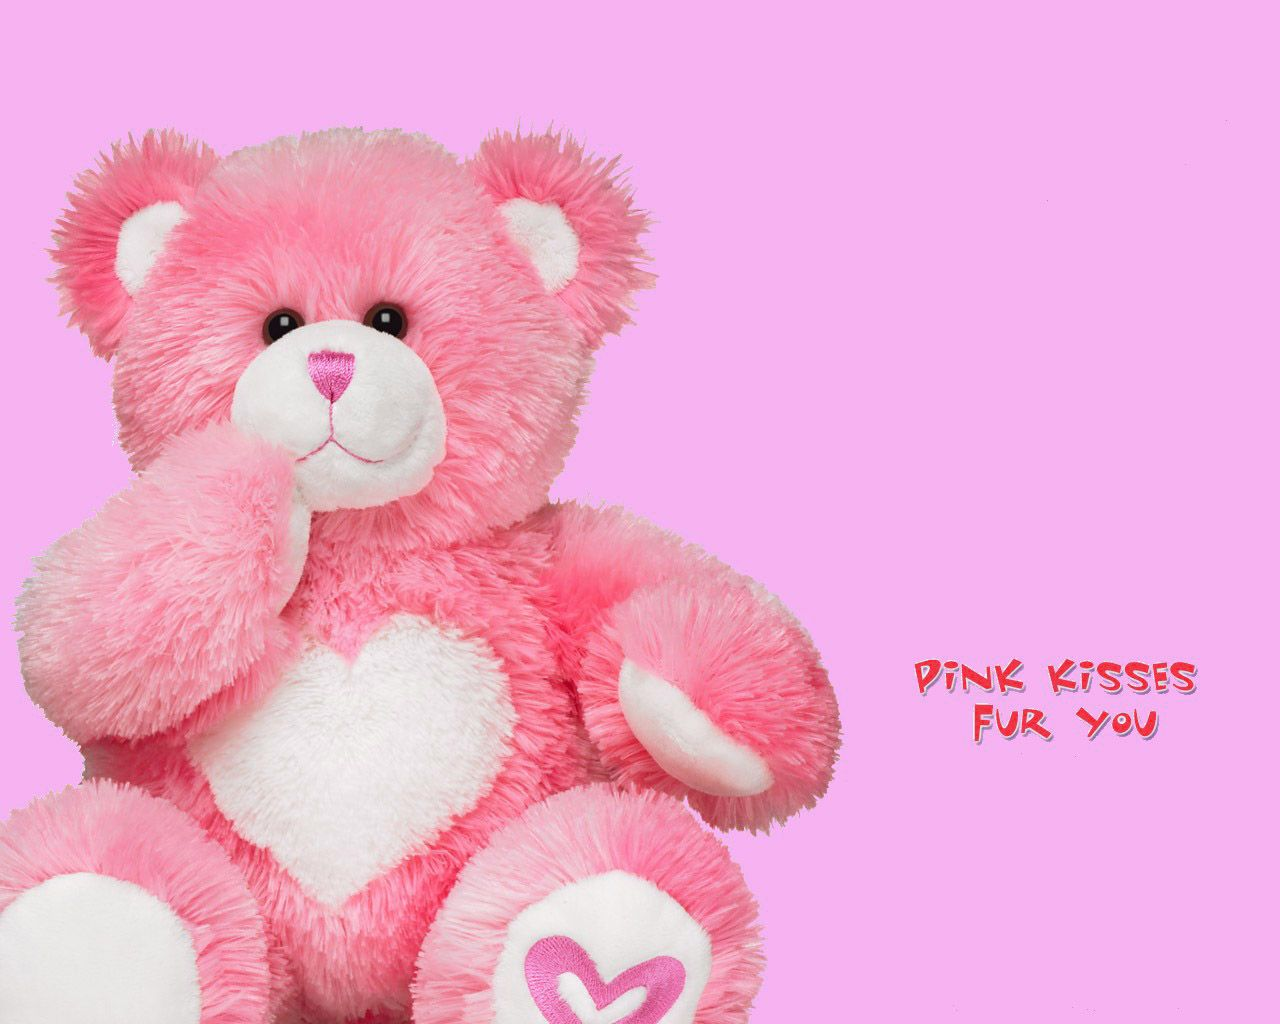 Pink Kiss For U From Pink Teddy Bear Teddy Bear Wallpaper Valentines Day Teddy Bear Teddy Bear Pictures